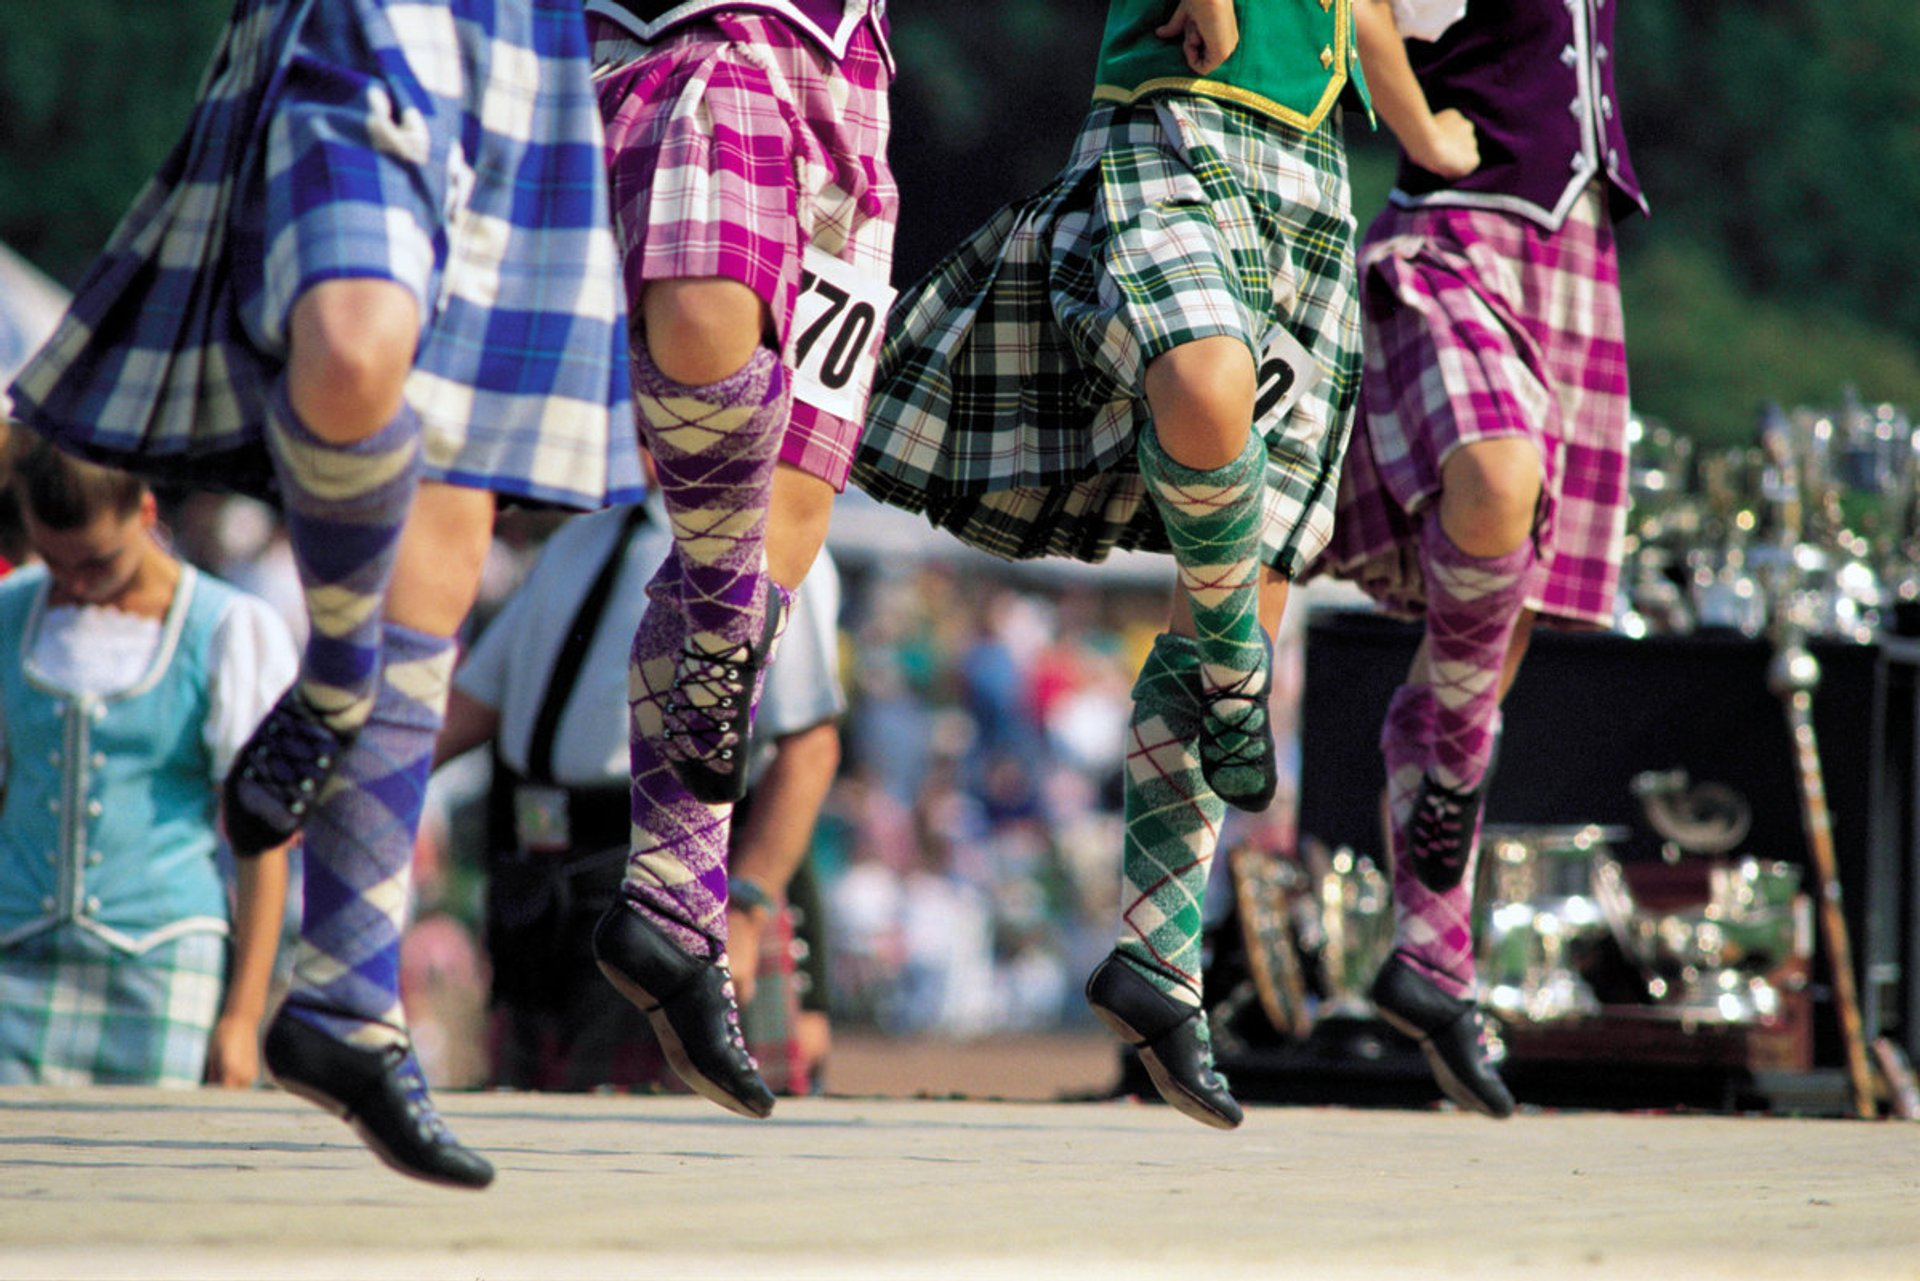 Cowal Highland Gathering in Scotland 2020 - Best Time